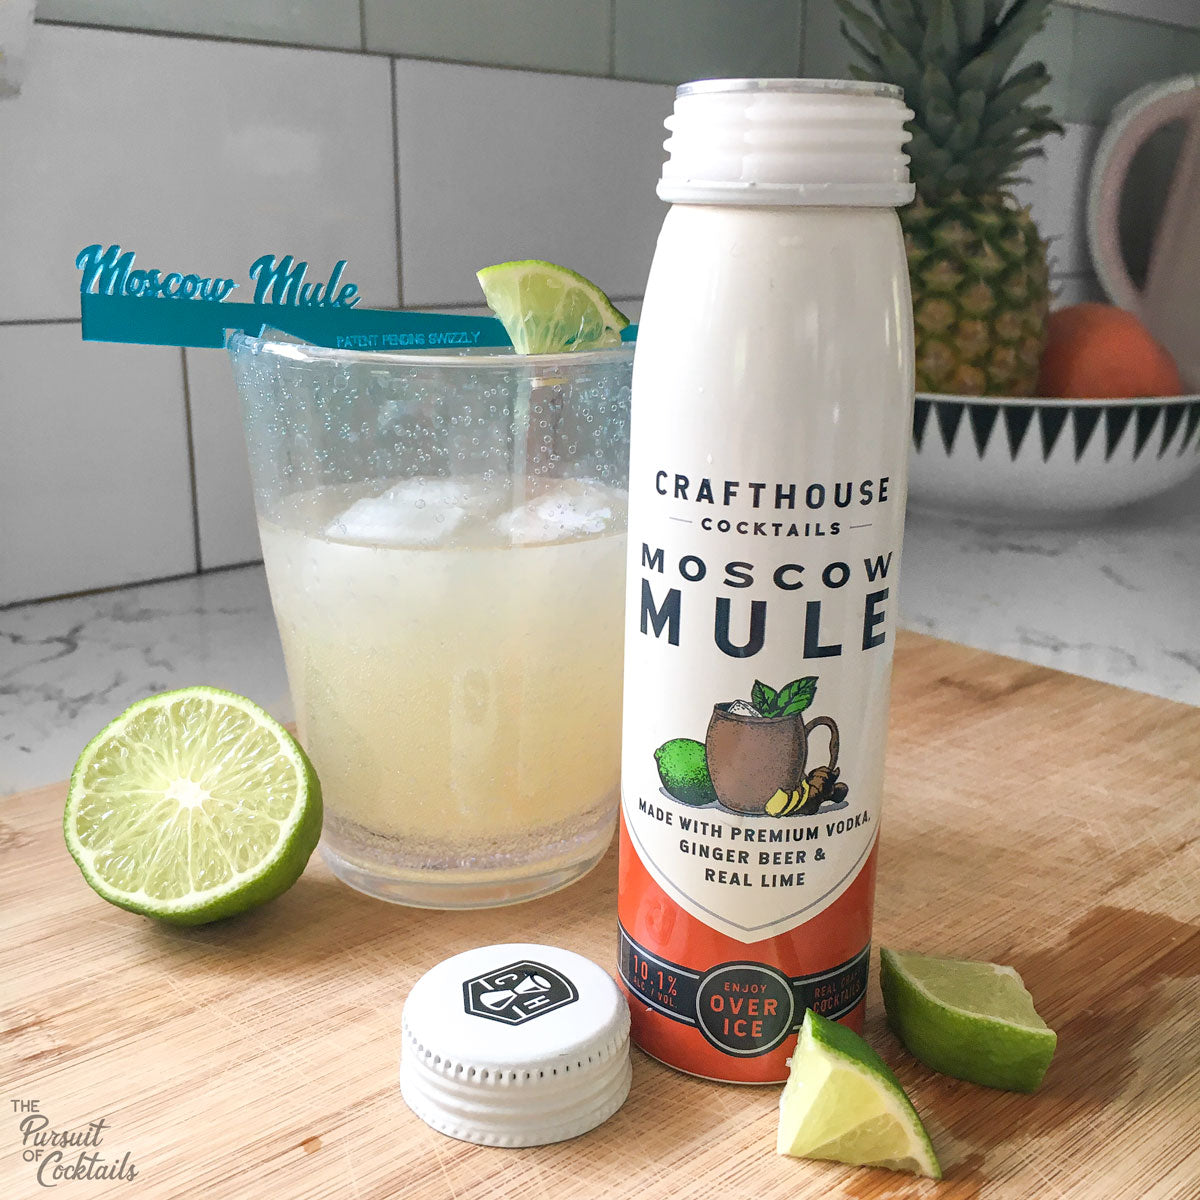 Ready to drink Crafthouse Cocktail Moscow Mule review